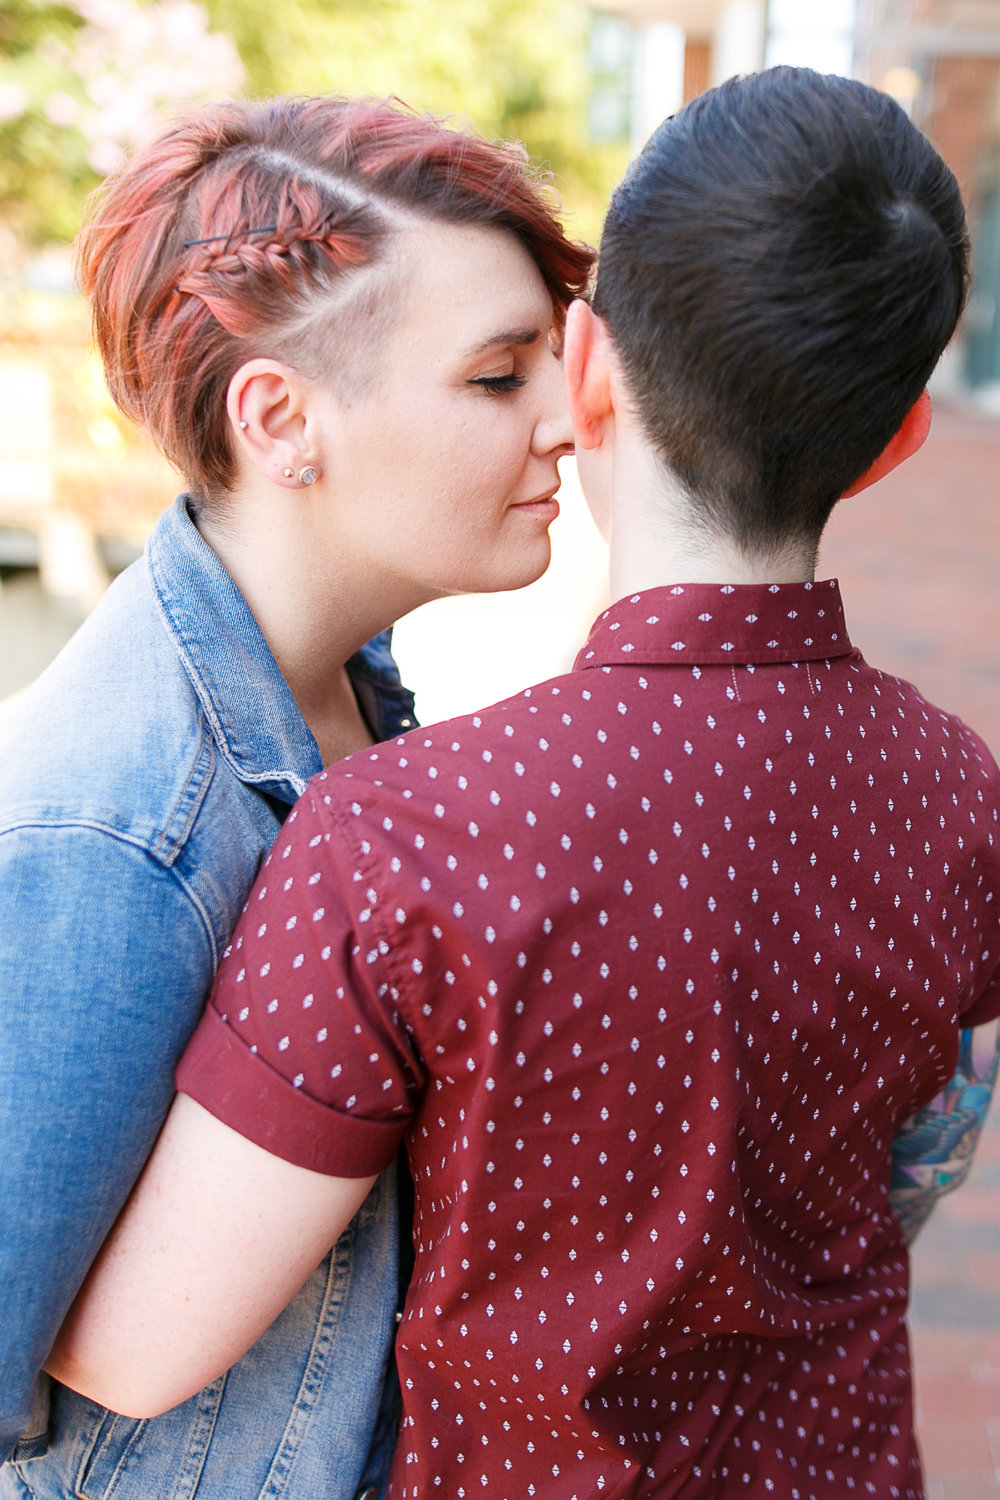 LGBTQ Baltimore Engagement Session with lesbian photographer Swiger Photography15.jpg